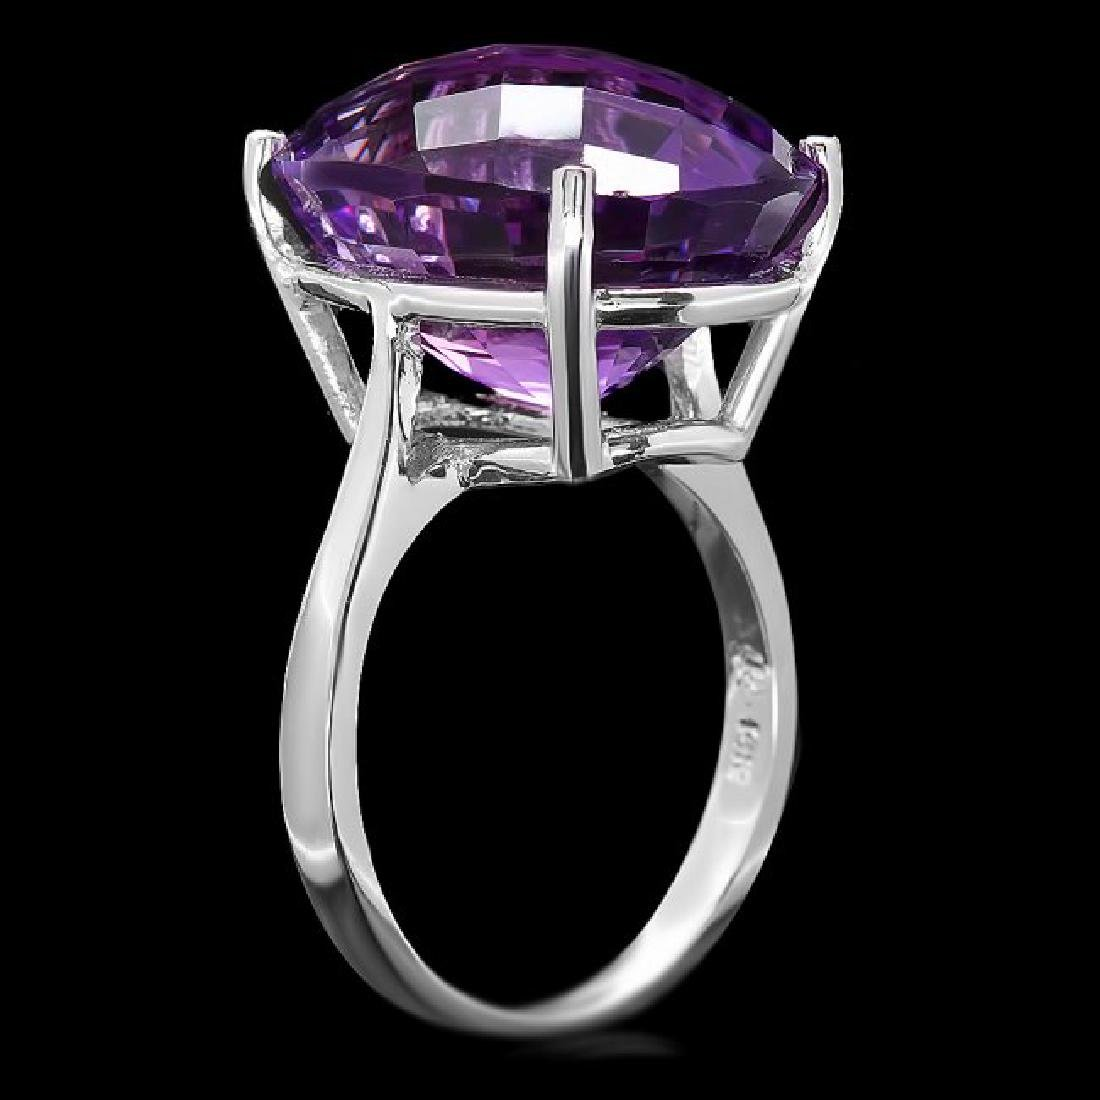 14k White Gold 15.00ct Amethyst Ring - 3